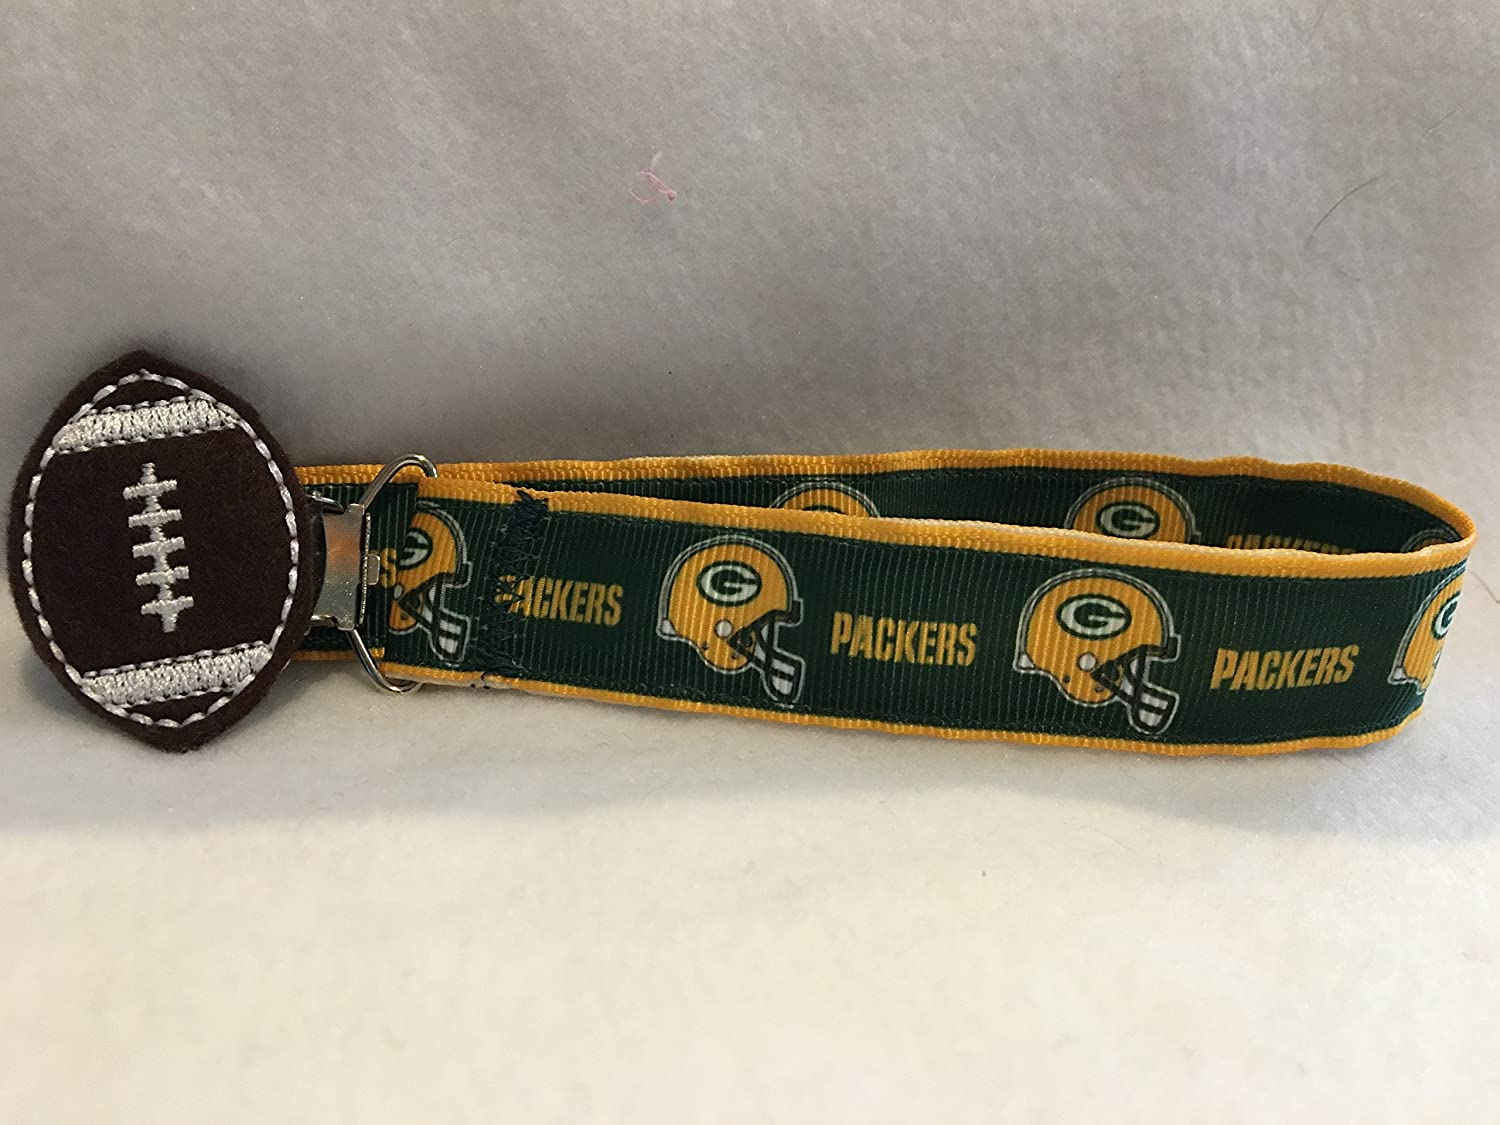 Green Bay Packers Baby Gifts, Green Bay Packers Ribbon, Custom Baby Gift, Preppy Baby Shower, Sports Theme Nursery